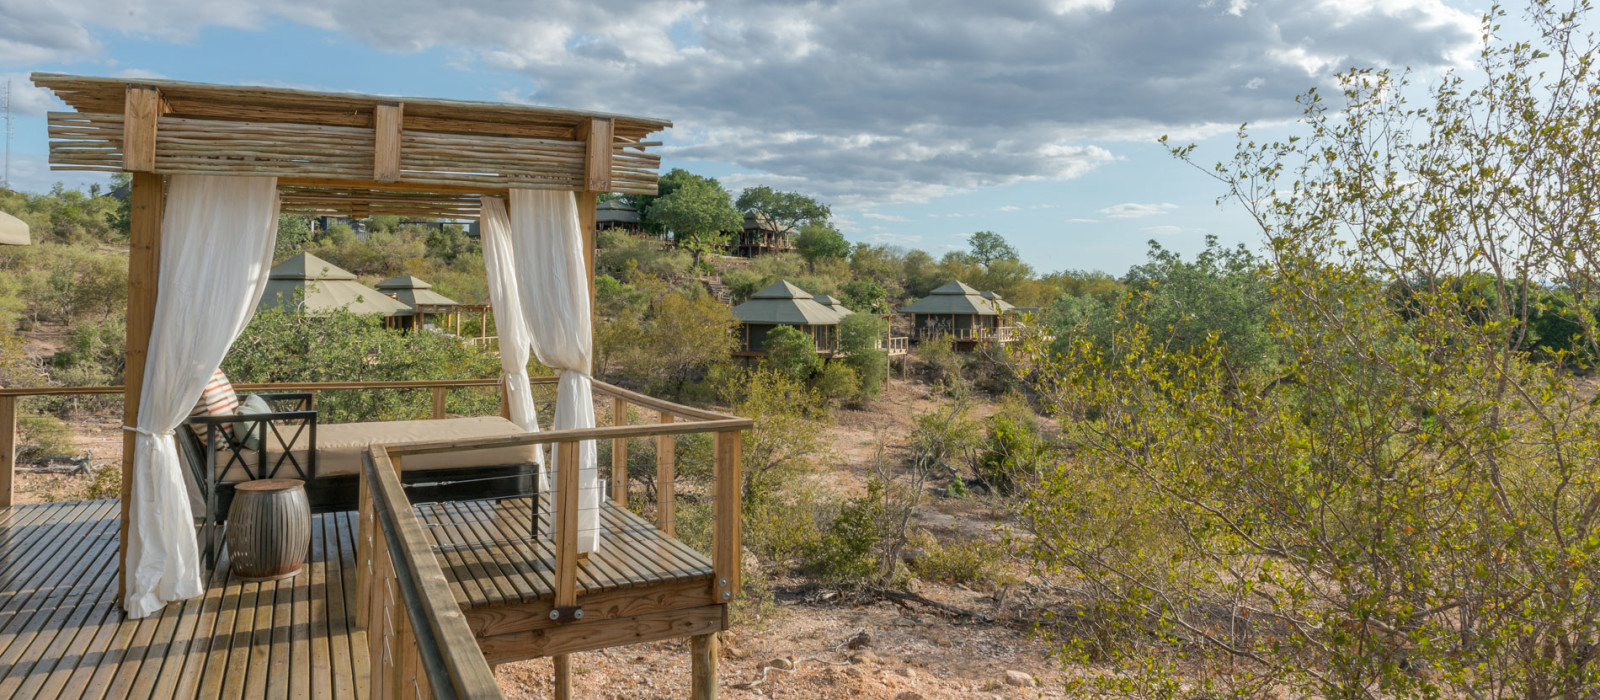 Hotel Simbavati Hilltop Lodge South Africa